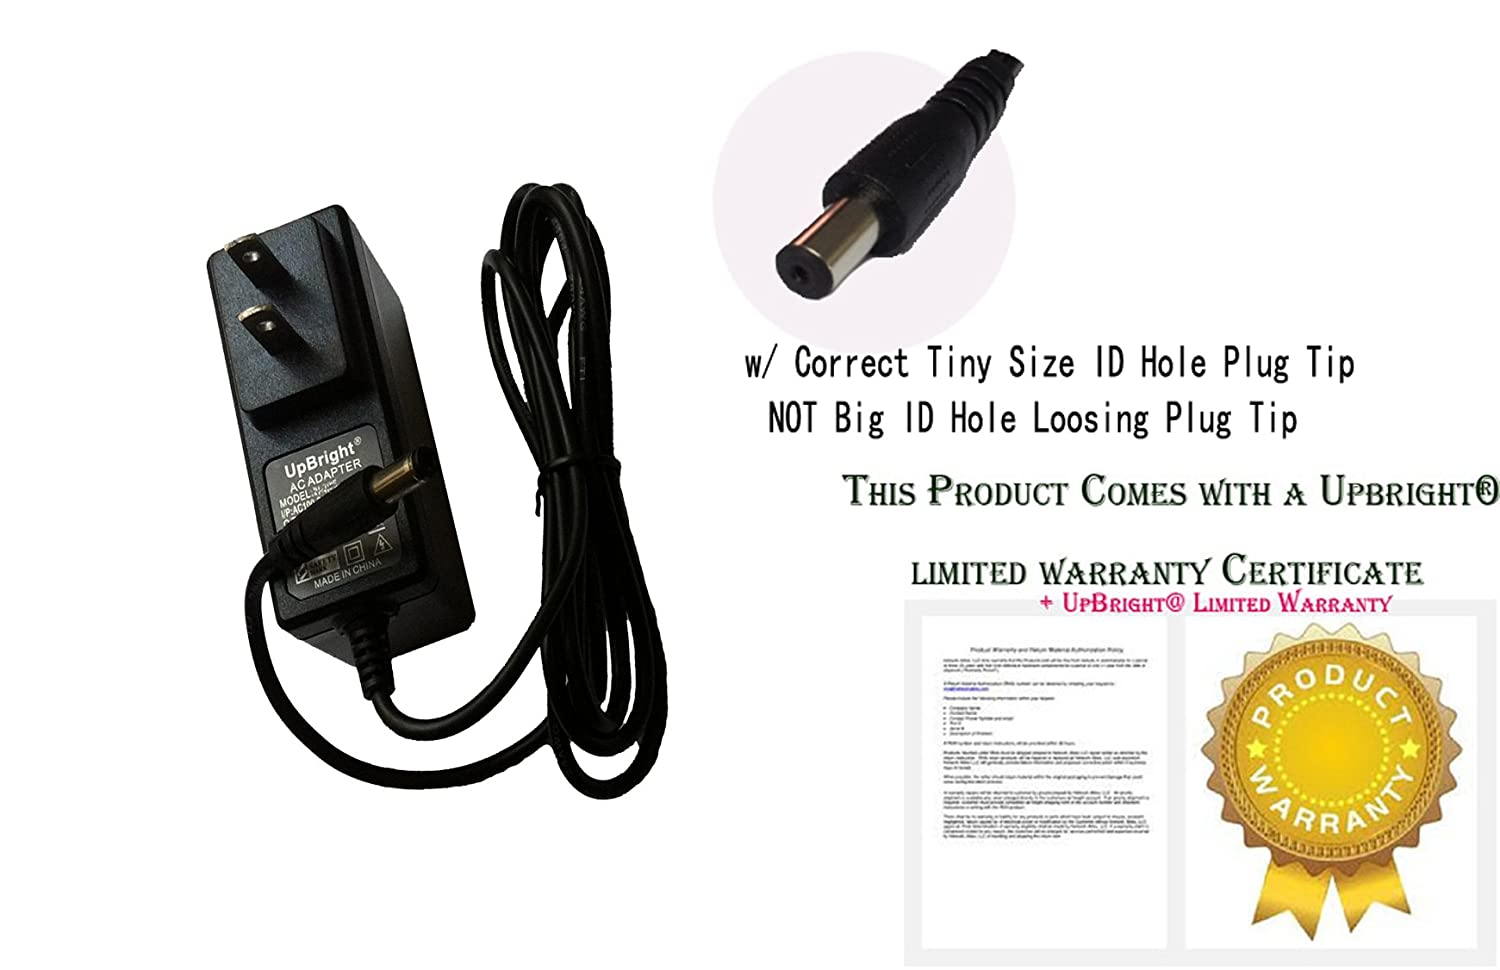 Upbright New 12v 1500ma Ac Dc Adapter Replacement For Download Image Converter To 110v Circuit Pc Android Iphone Casio Ad 12ul Ver No Tj2 Tc1 Ad12m3 Piano Keyboard Dc12v 12vdc